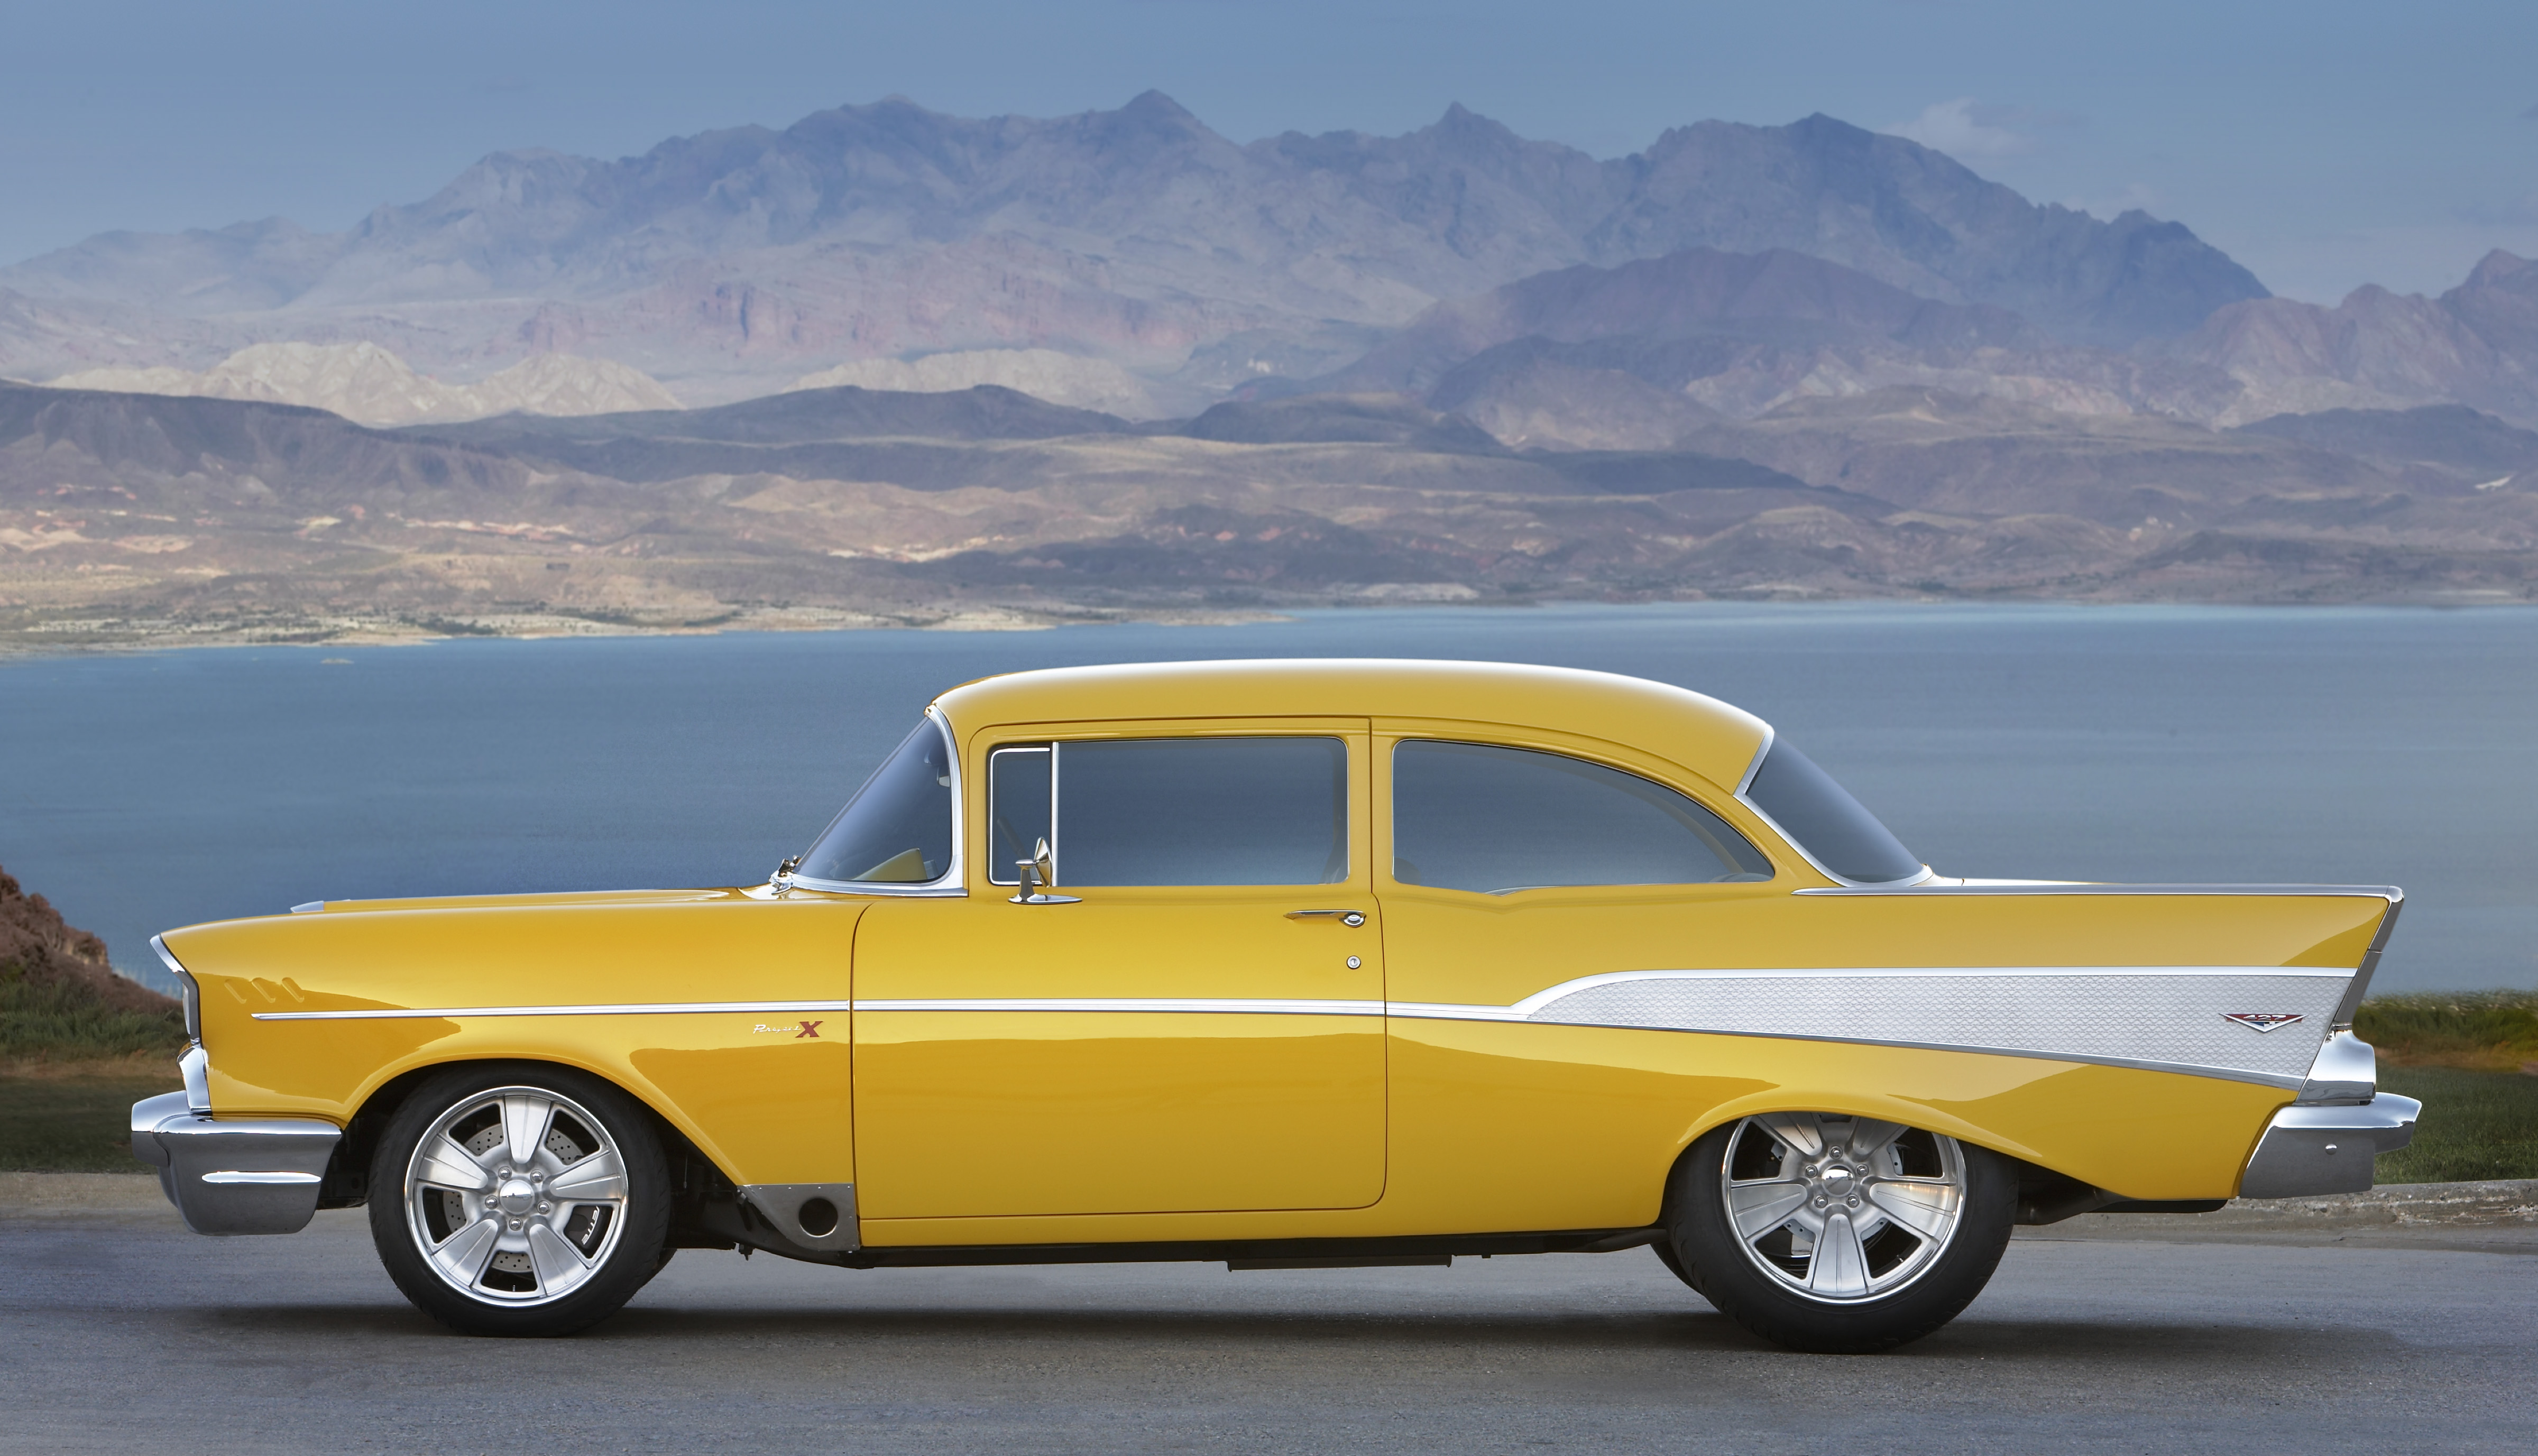 Your Ridiculously Awesome 57 Chevy Bel Air Wallpaper Is Here 4800x2754